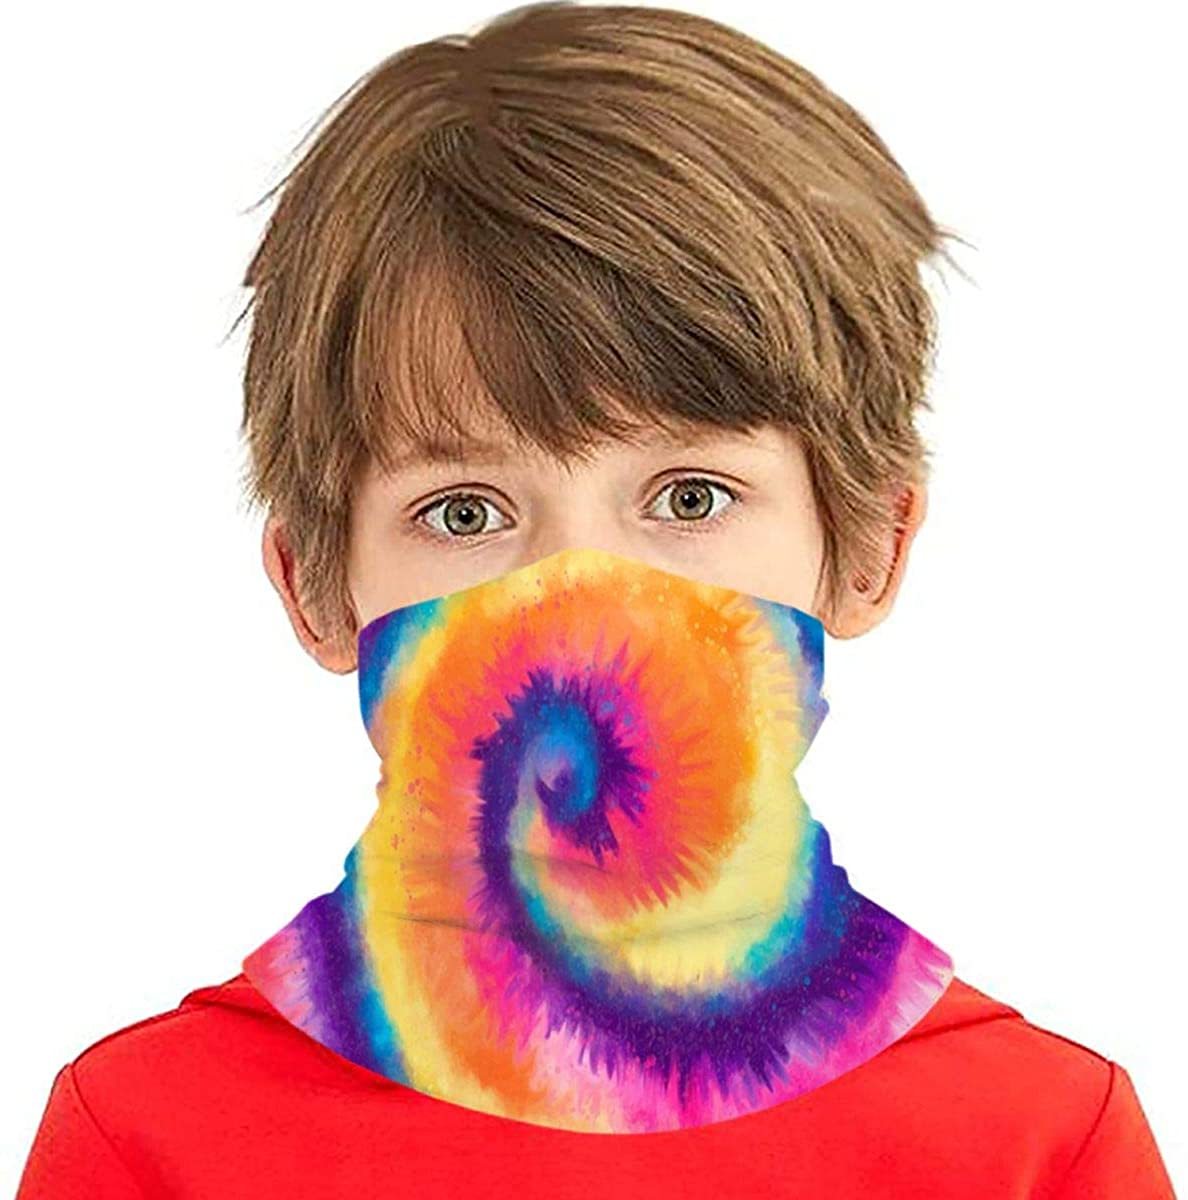 Advanced Abstract Tie Dye Kids Face Mask Cute Printed Face Cover Bandana Magical Multi Funtion Balaclava For Boys & Girls